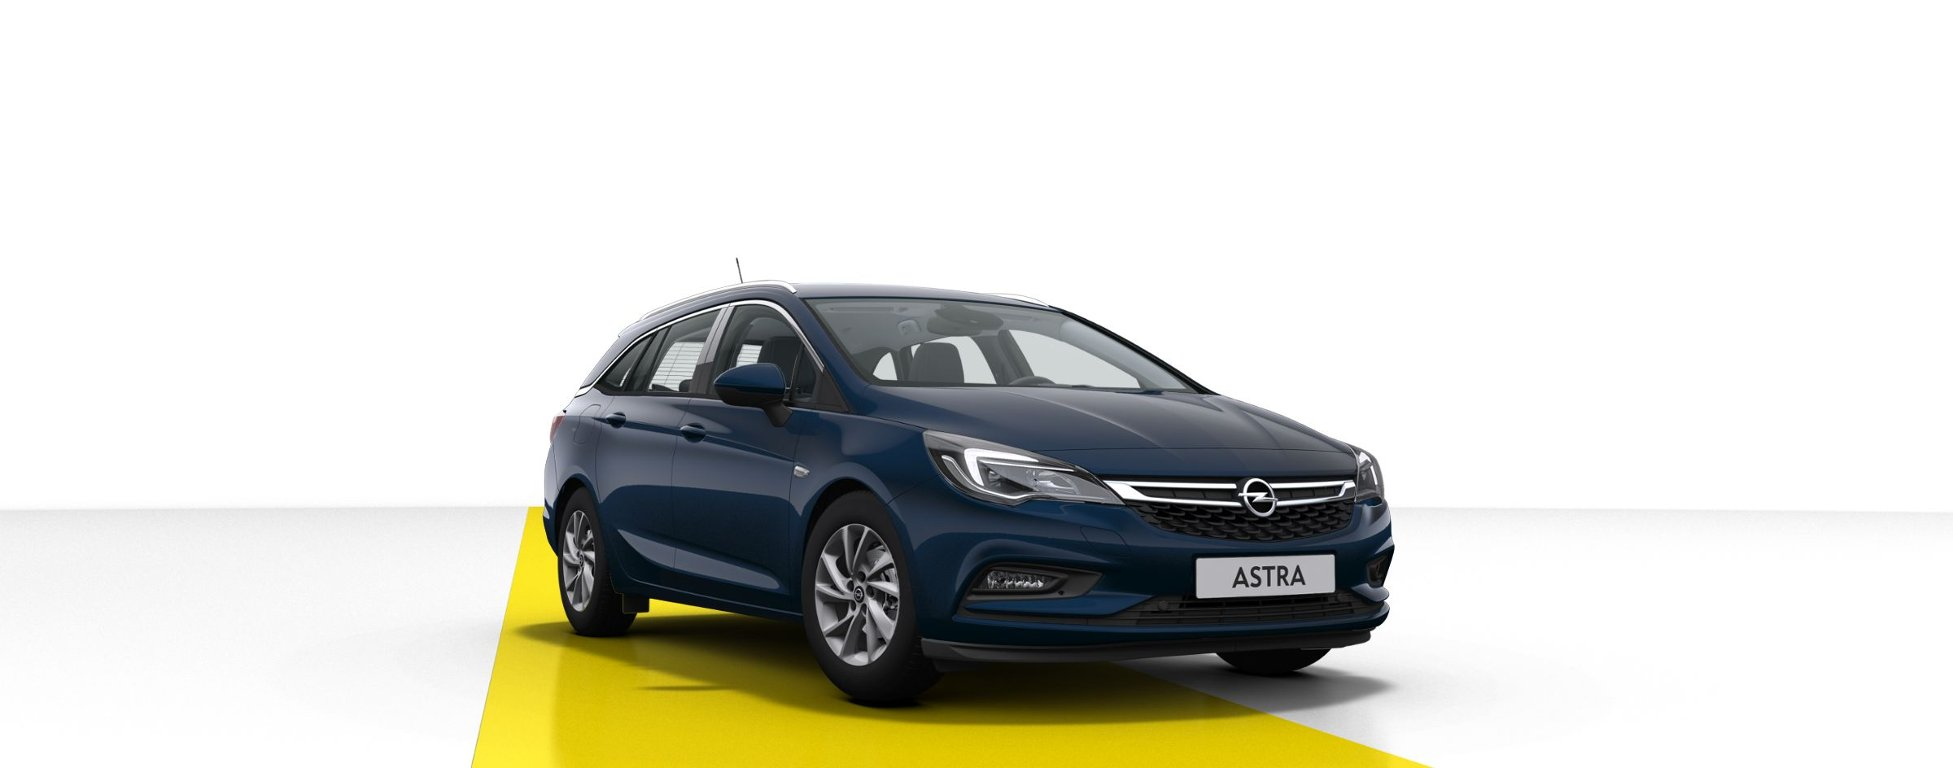 Opel Astra Innovation ST 1.4Turbo 110kW